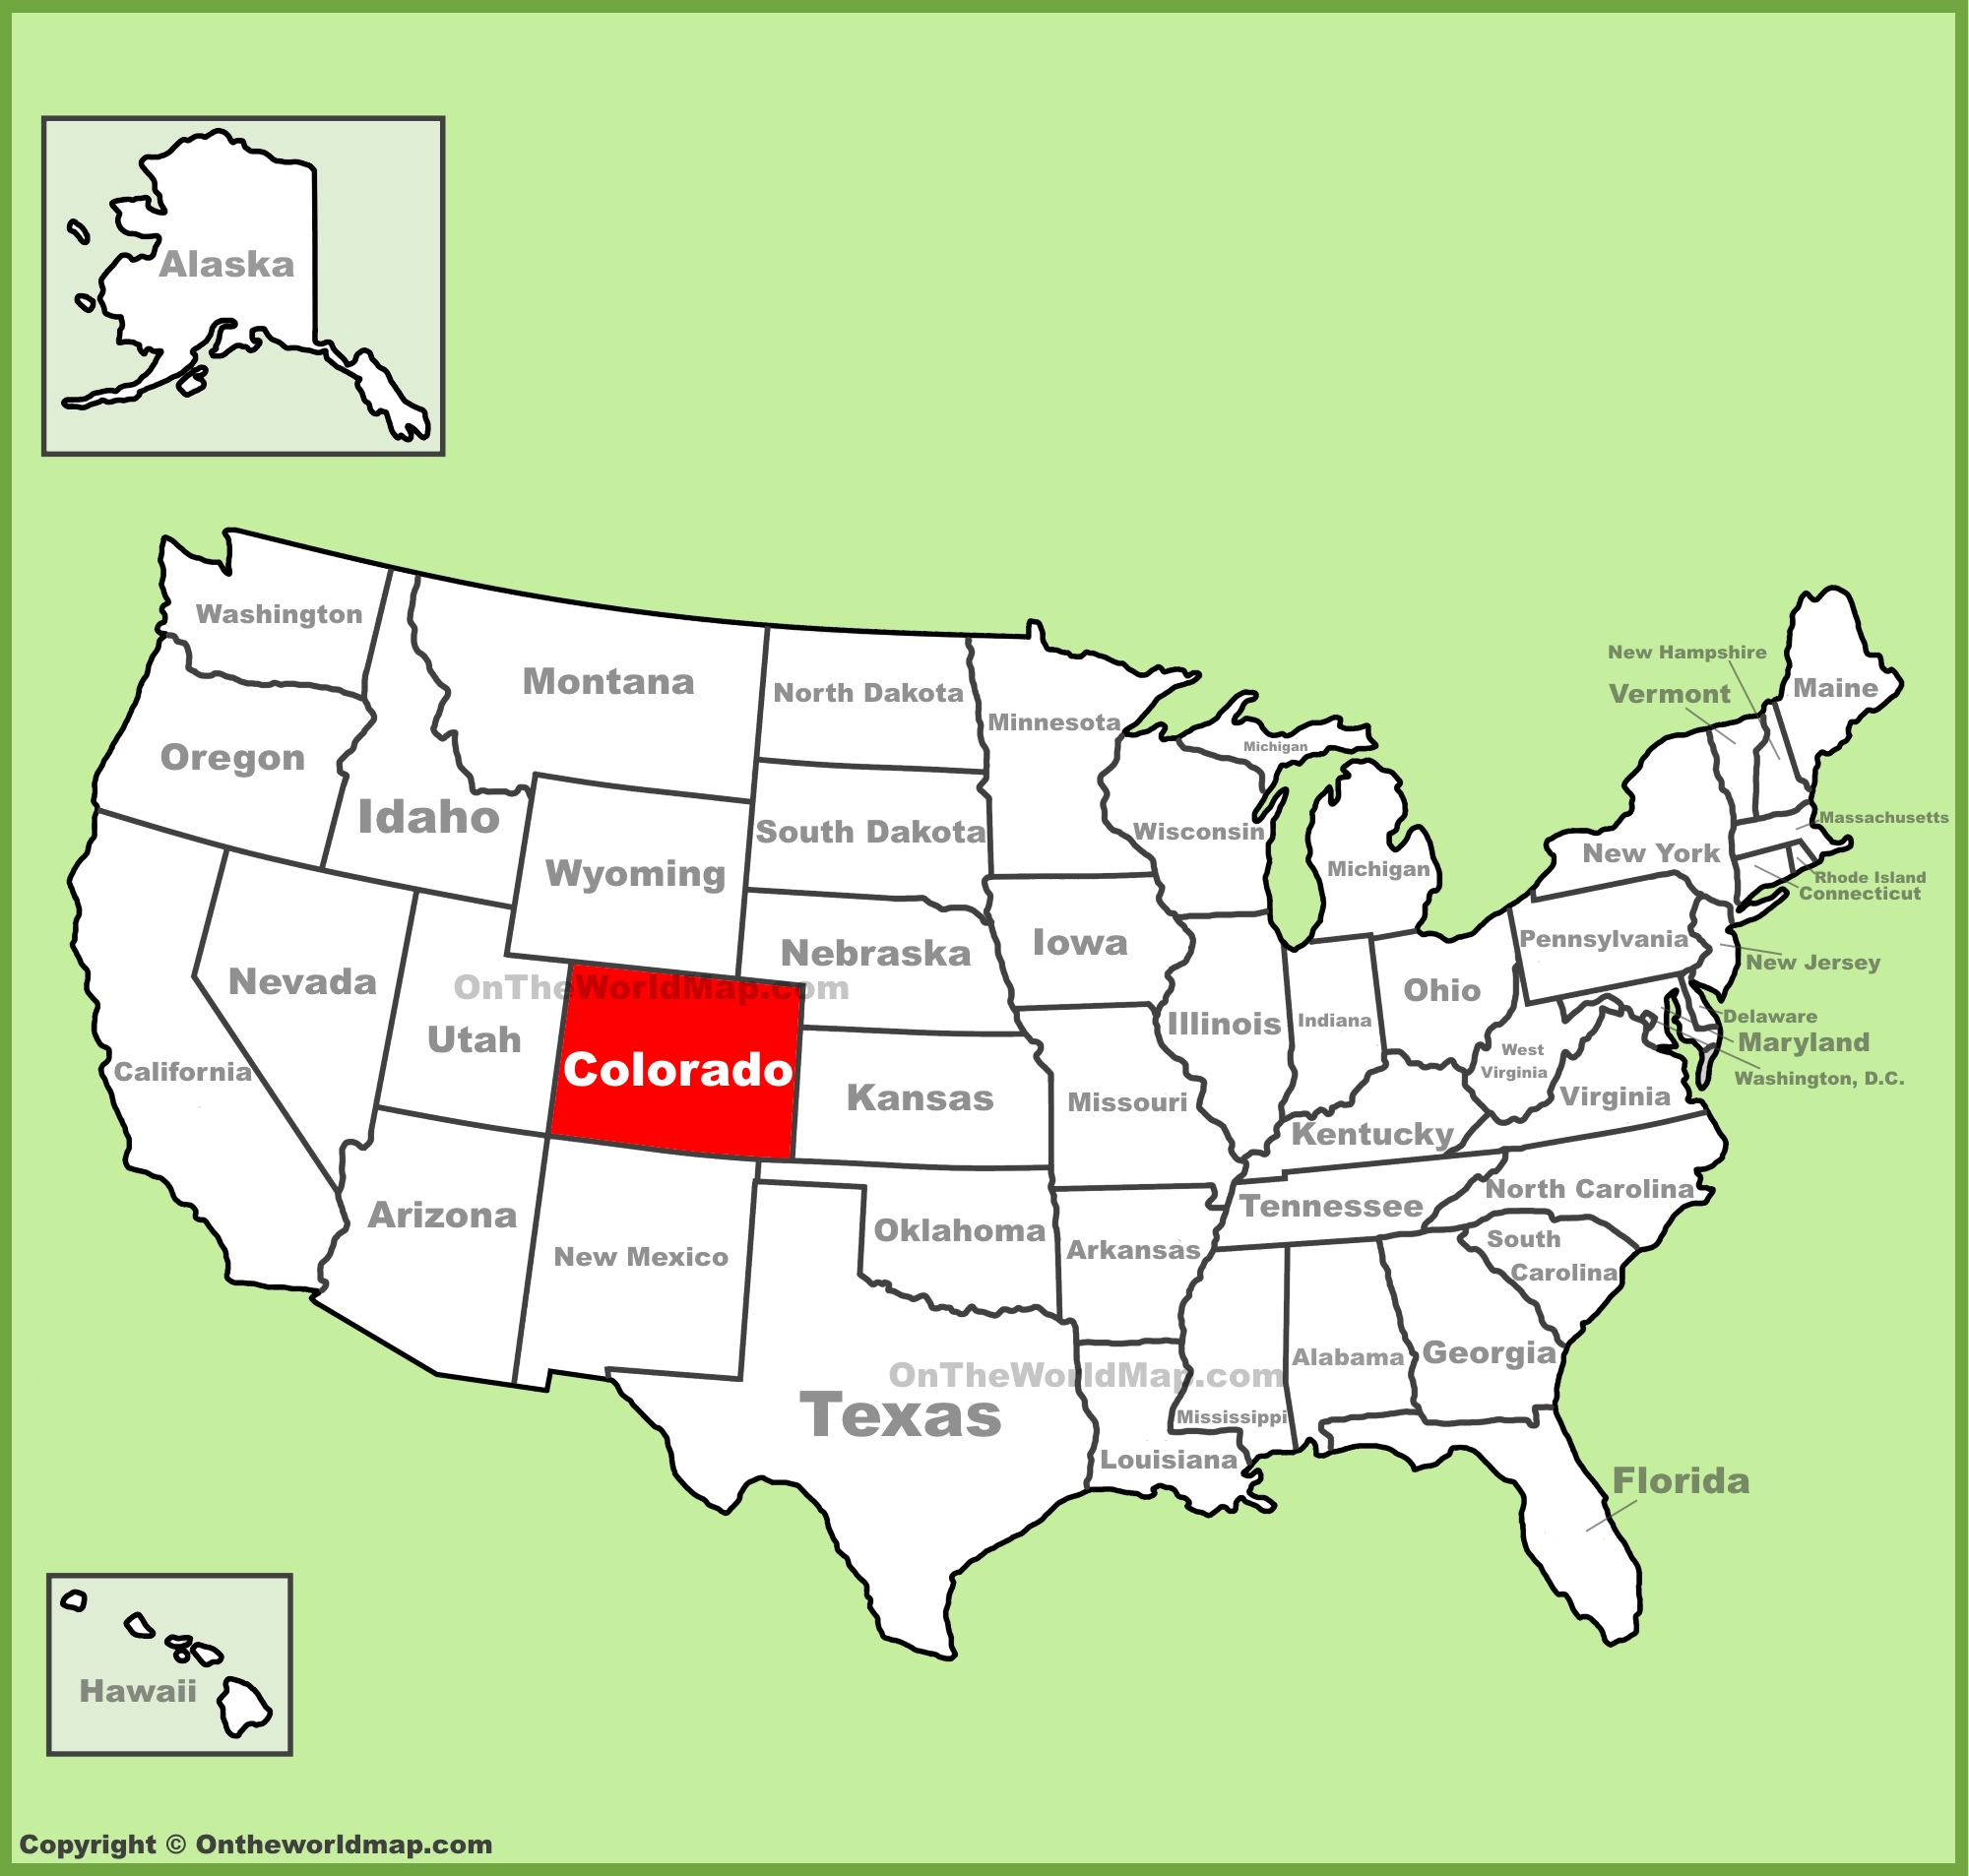 Colorado Location On The US Map - Colorado in the us map